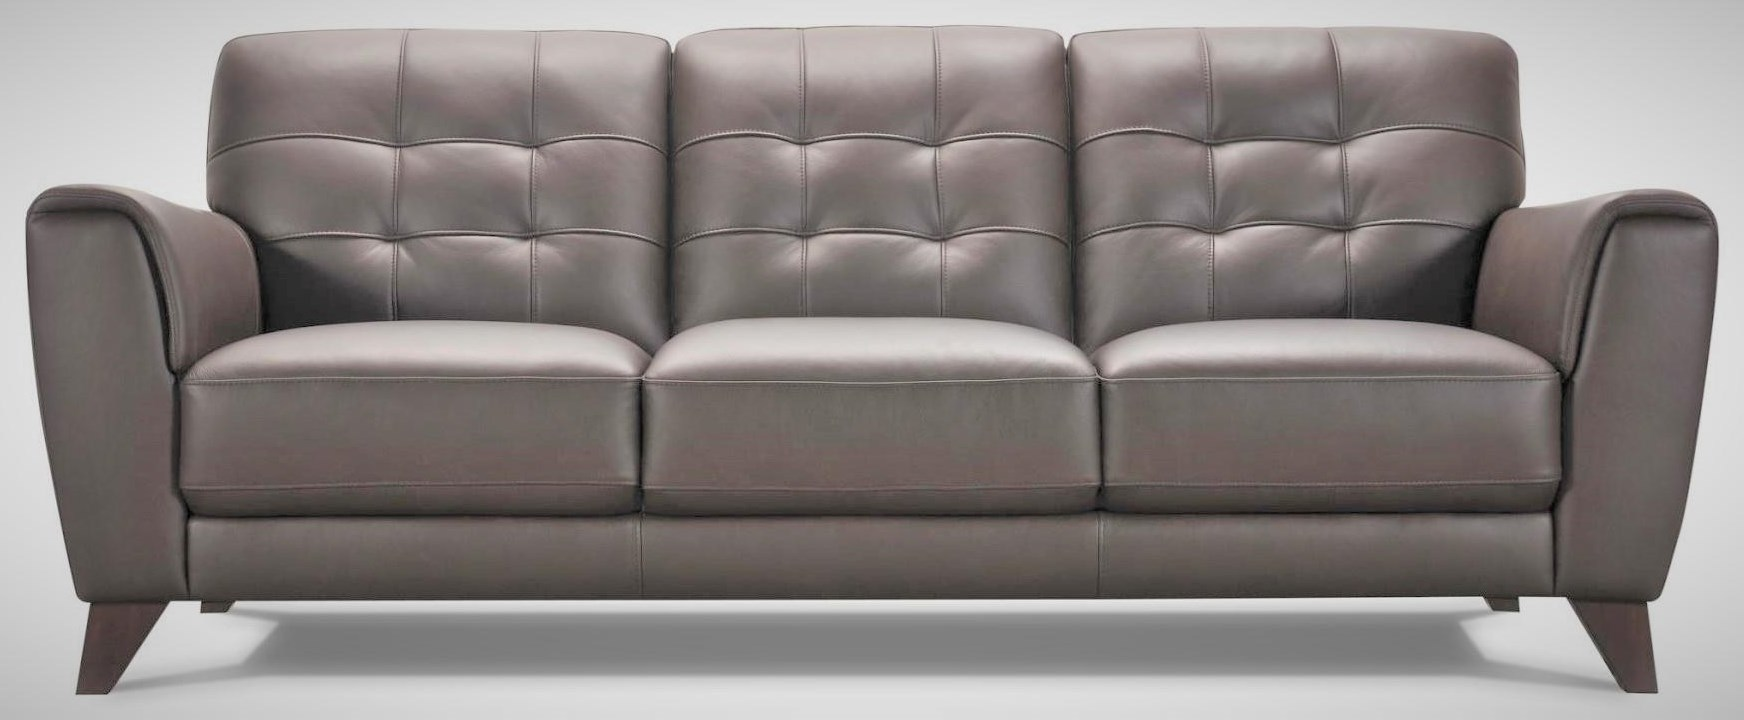 32294 Leather Sofa - Sand by Violino at Furniture Fair - North Carolina